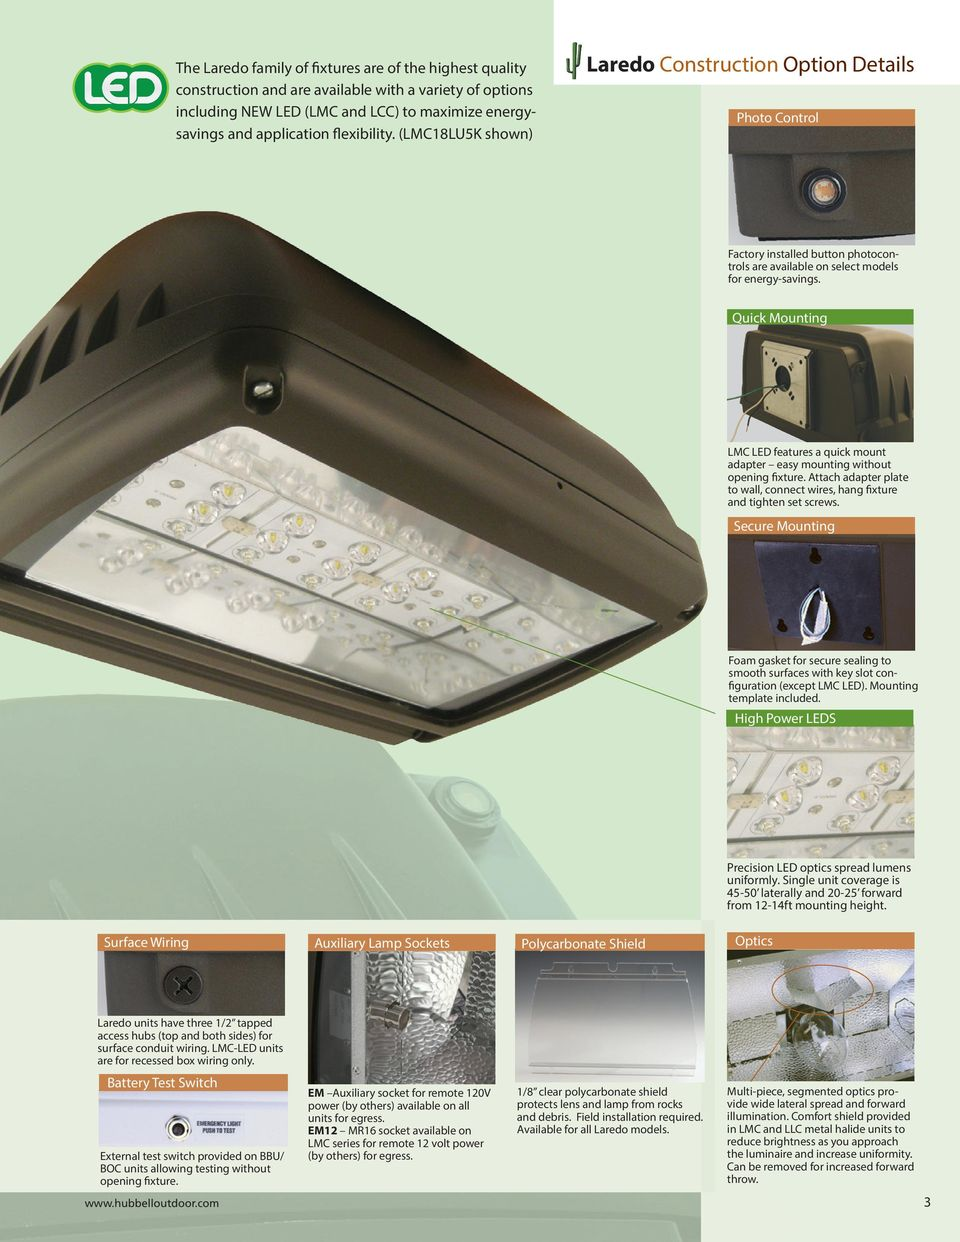 Laredo Decorative Wallpack Family Pdf Option 4 Fixture Between Two Switches Power Through Light Quick Mounting Lmc Led Features A Mount Adapter Easy Without Opening Attach